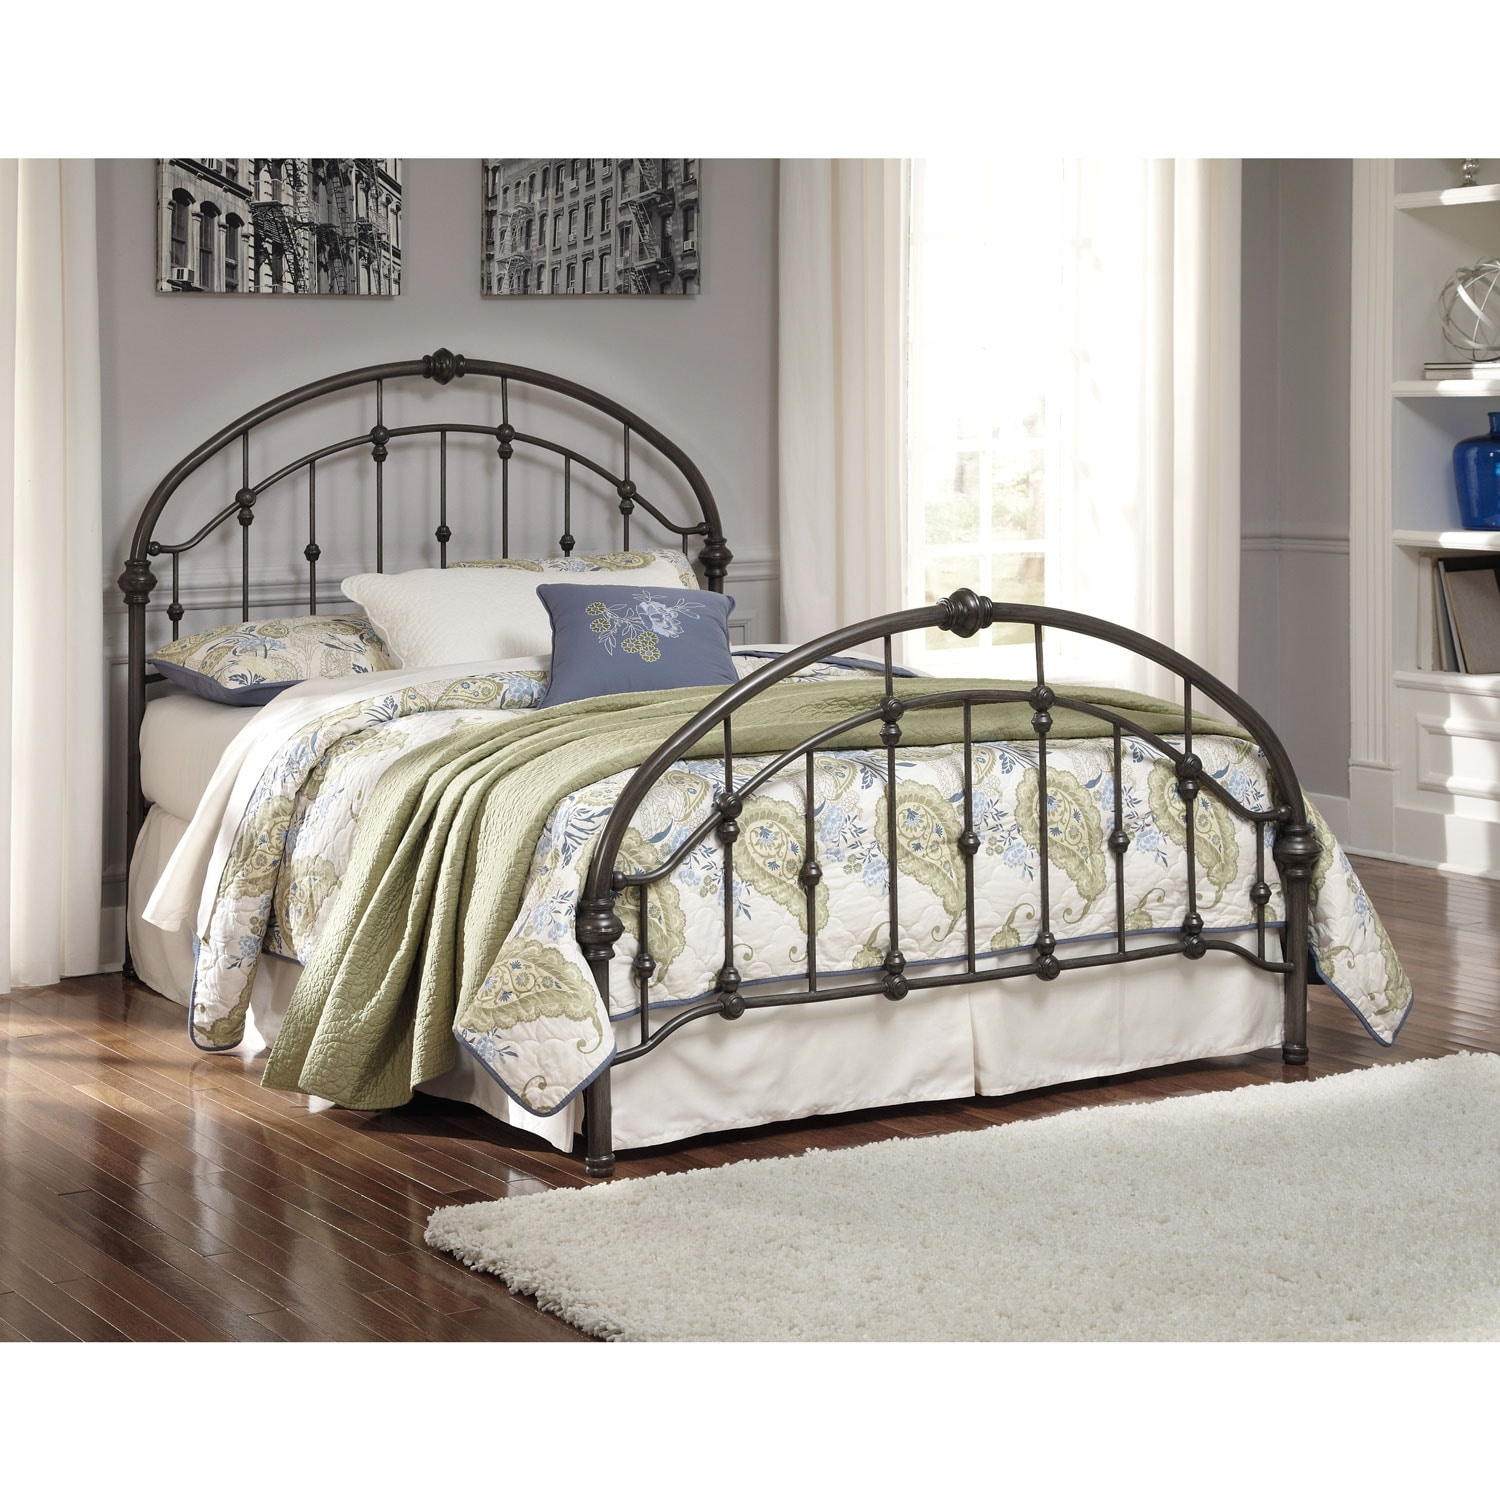 nashburg queen metal headboard bronze the brick. Black Bedroom Furniture Sets. Home Design Ideas